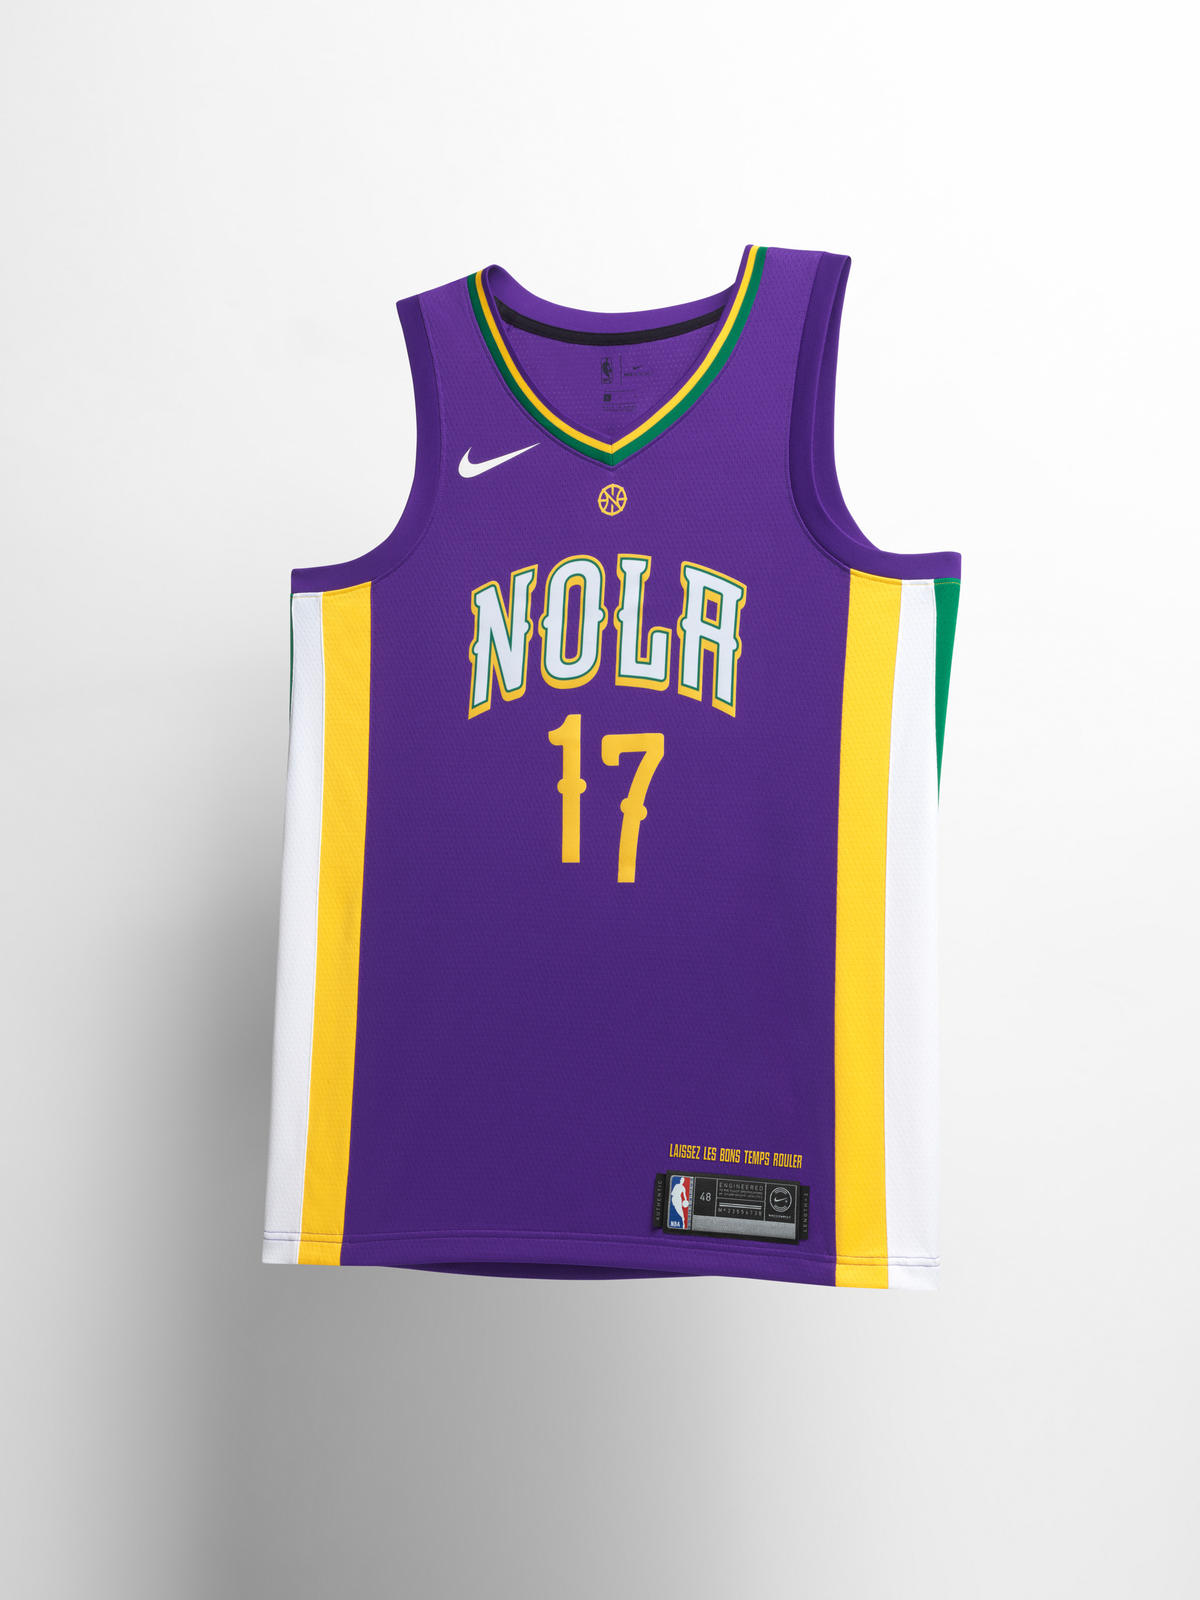 NBA City Edition jerseys  Photos of the final new Nike jersey  c9a88bb0e